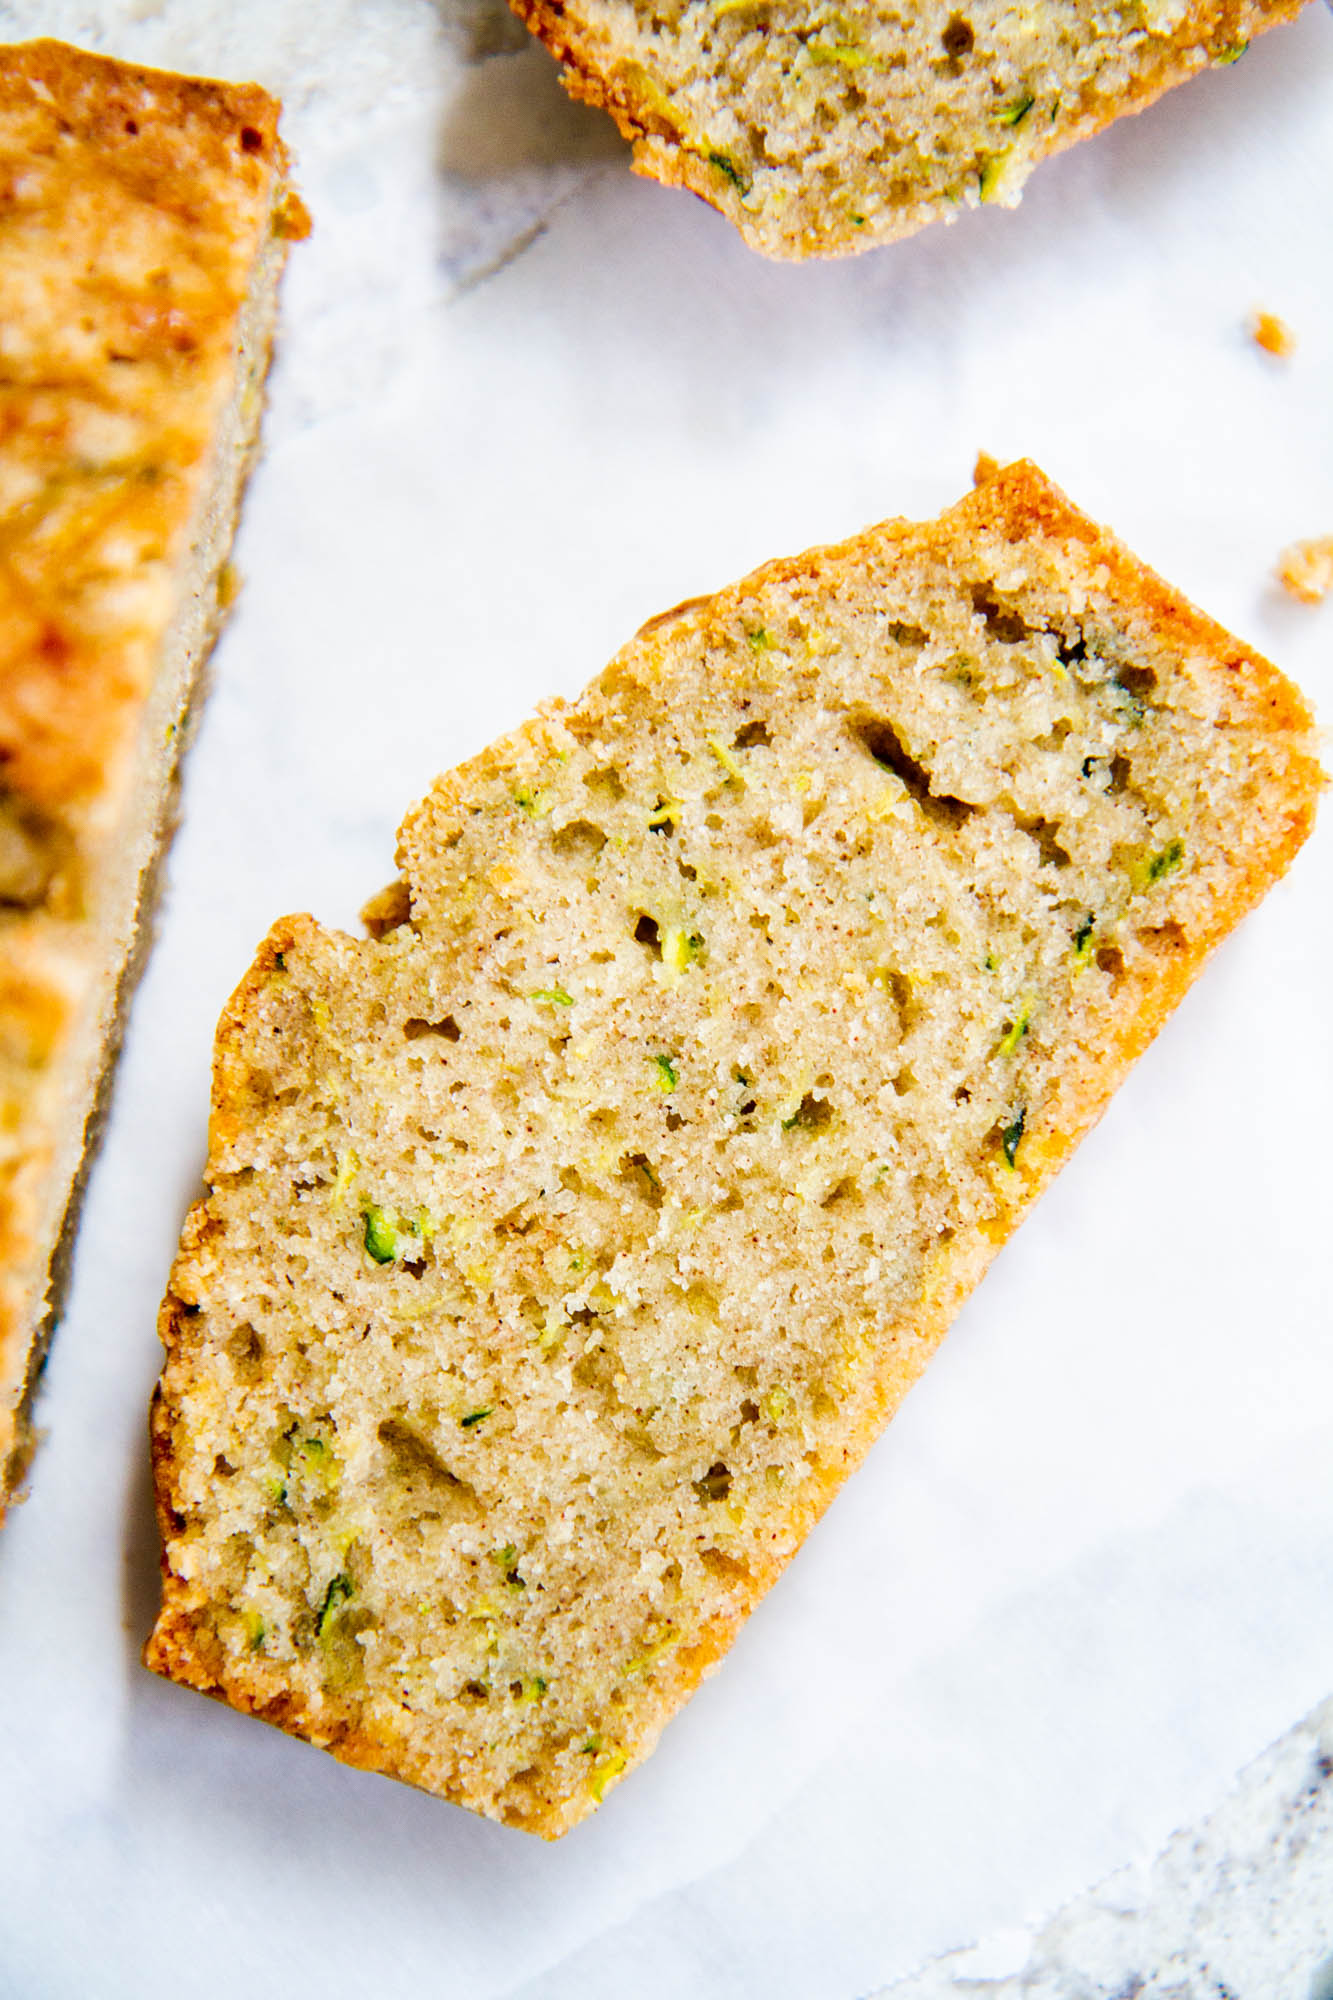 Mom's Zucchini Bread -- this is my mom's best-ever zucchini bread! It's moist, dense and full of sweet flavor. #zucchini #zucchinibread #quickbread @girlversusdough #girlversusdough